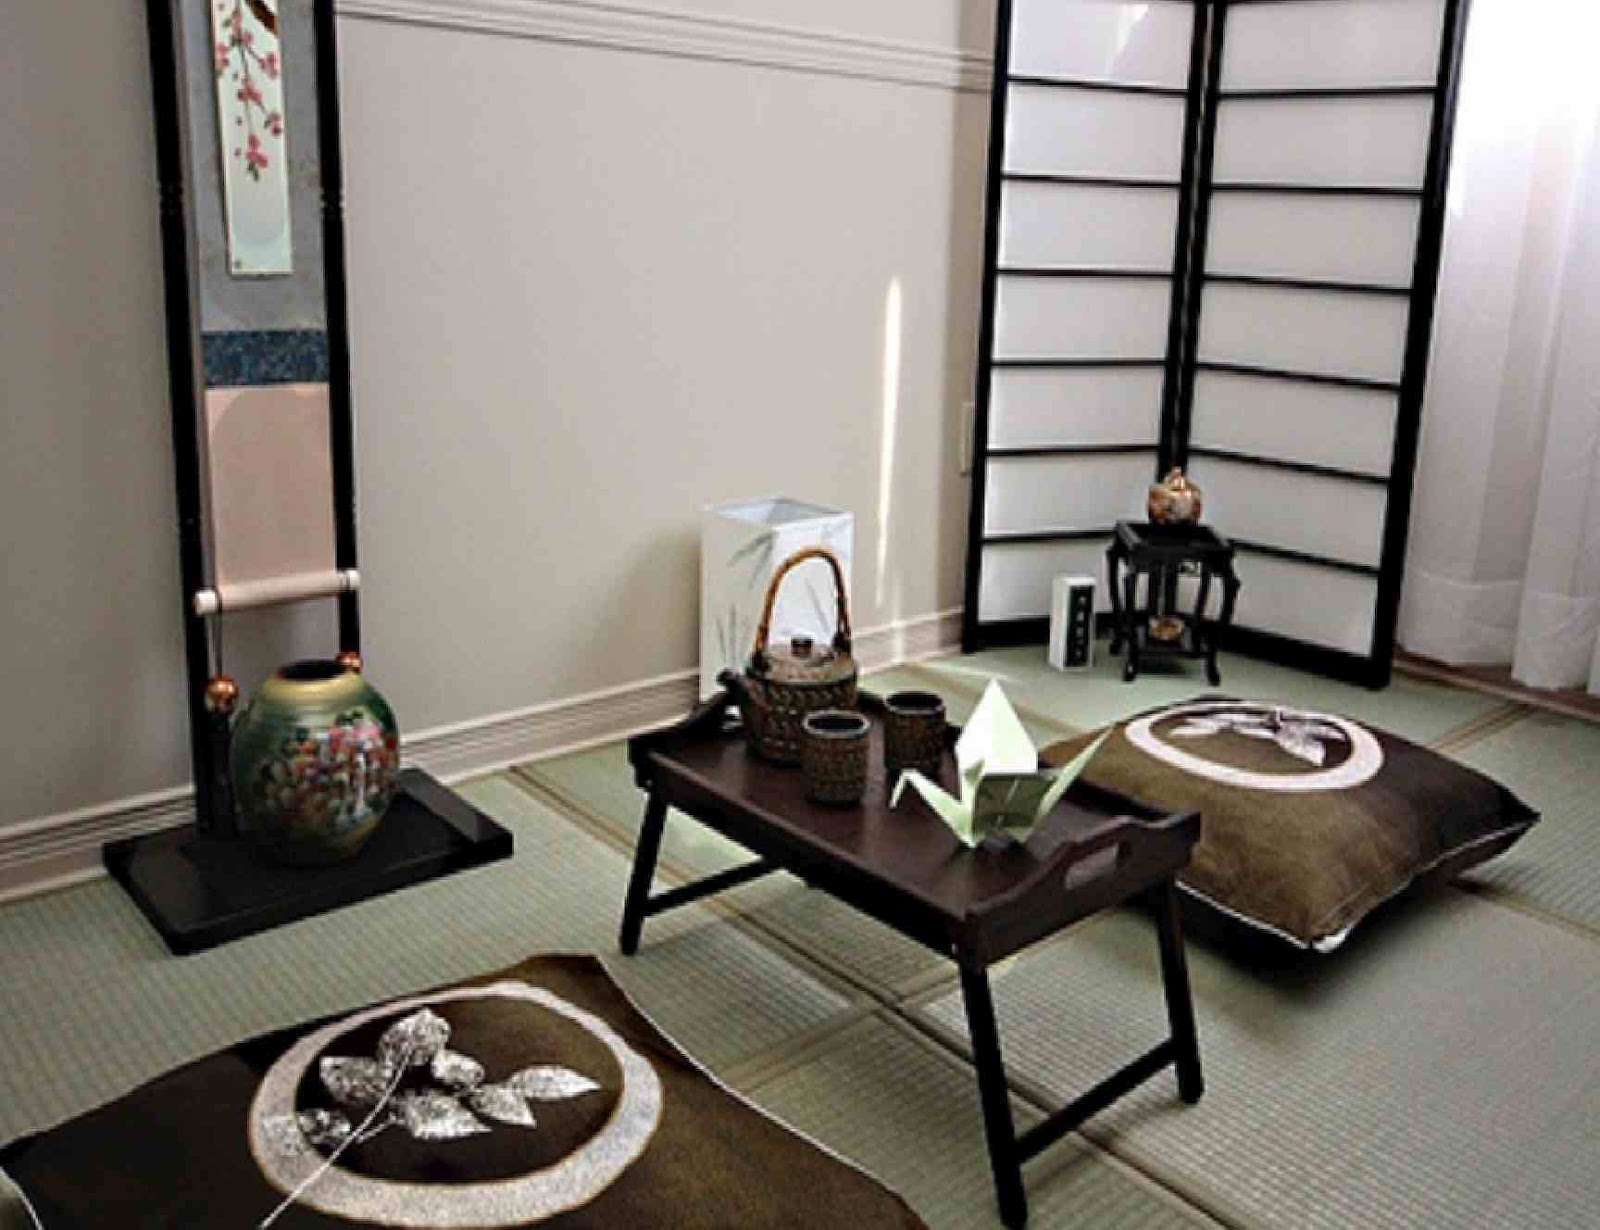 Japanese interior design interior home design for Asian home design